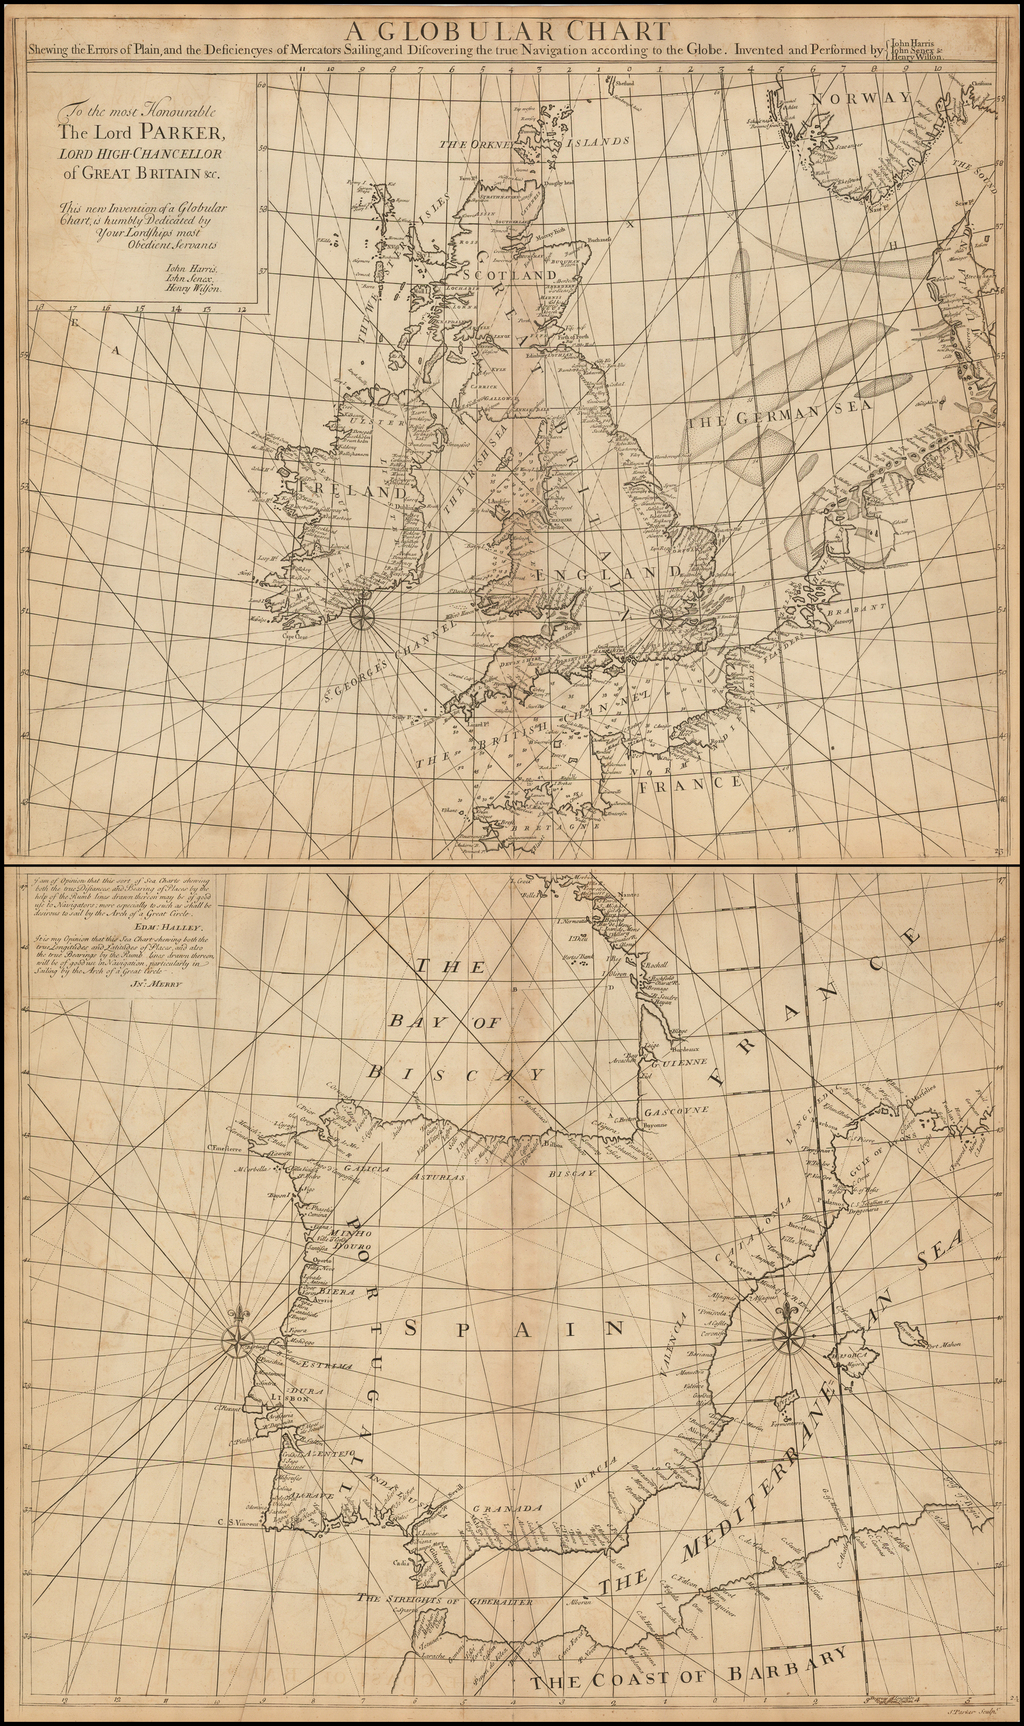 A Globular Chart Shewing the Errors of Plain, and the Deficiencyes of Mercators Sailing; and Discovering the true Navigation according to the Globe.  Invented and Performed by John Harris, John Senex & Henry Wilson By John Senex / Edmund Halley / Nathaniel Cutler